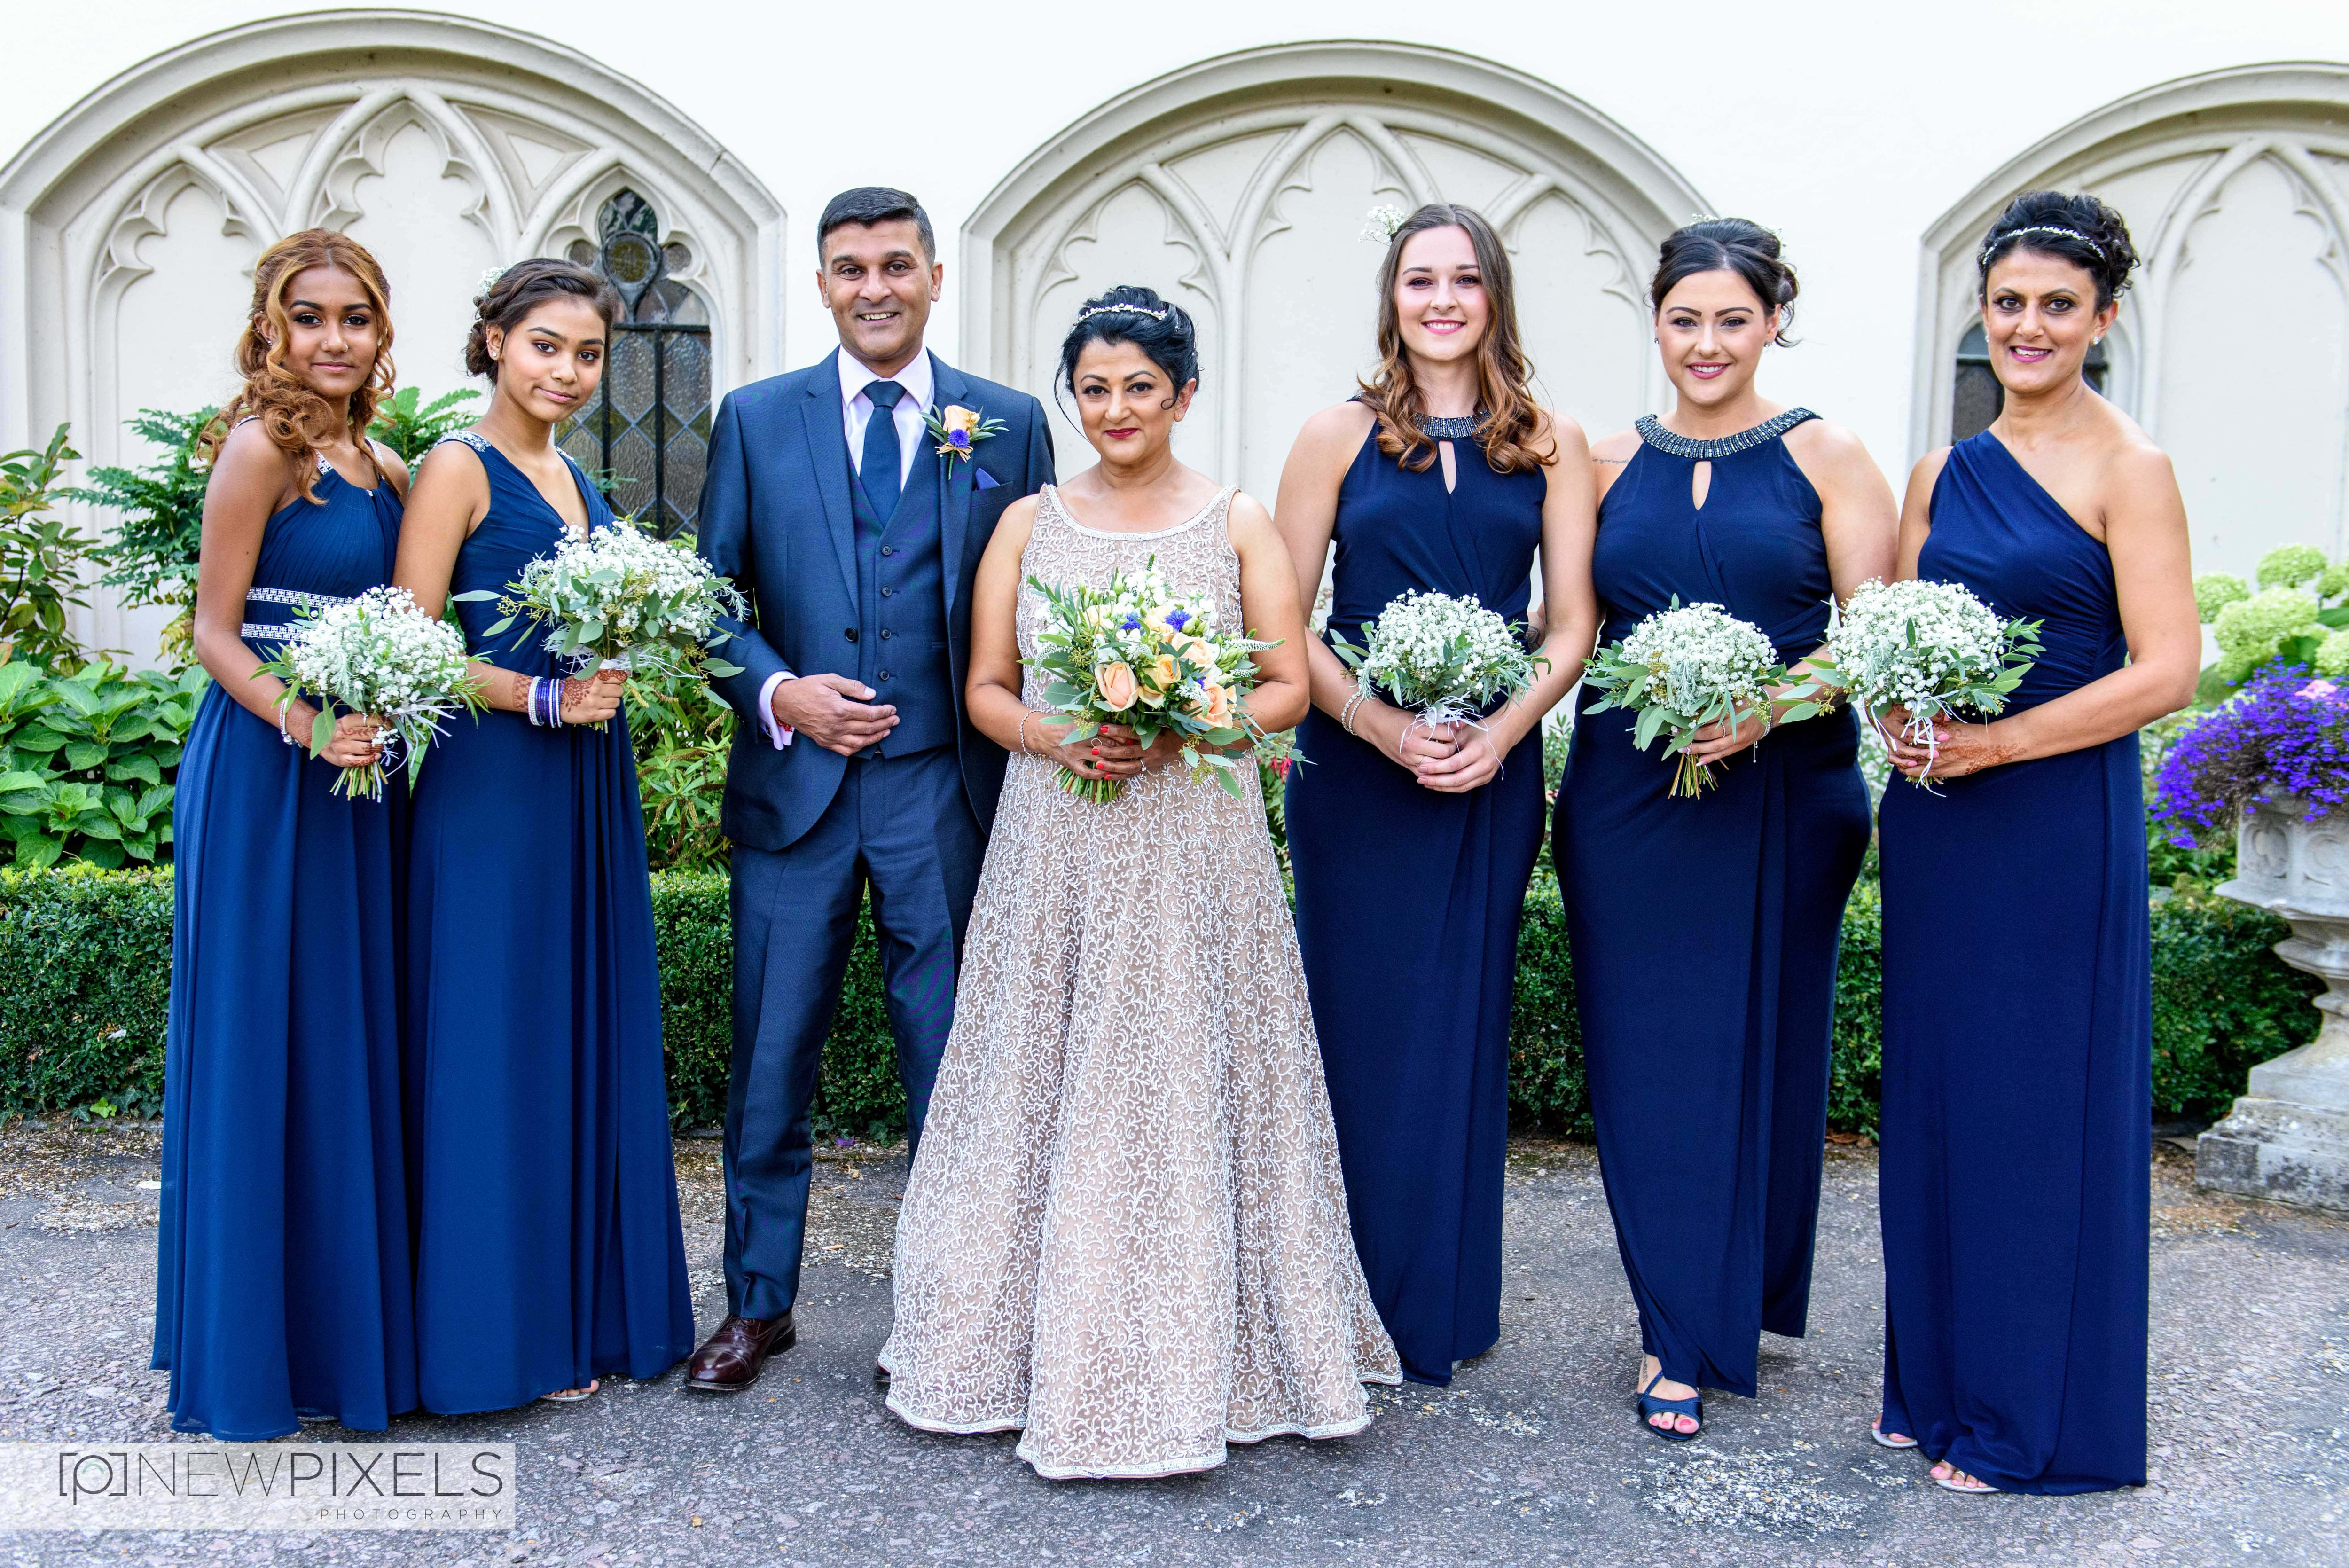 Ware Wedding Photography with New Pixels -14